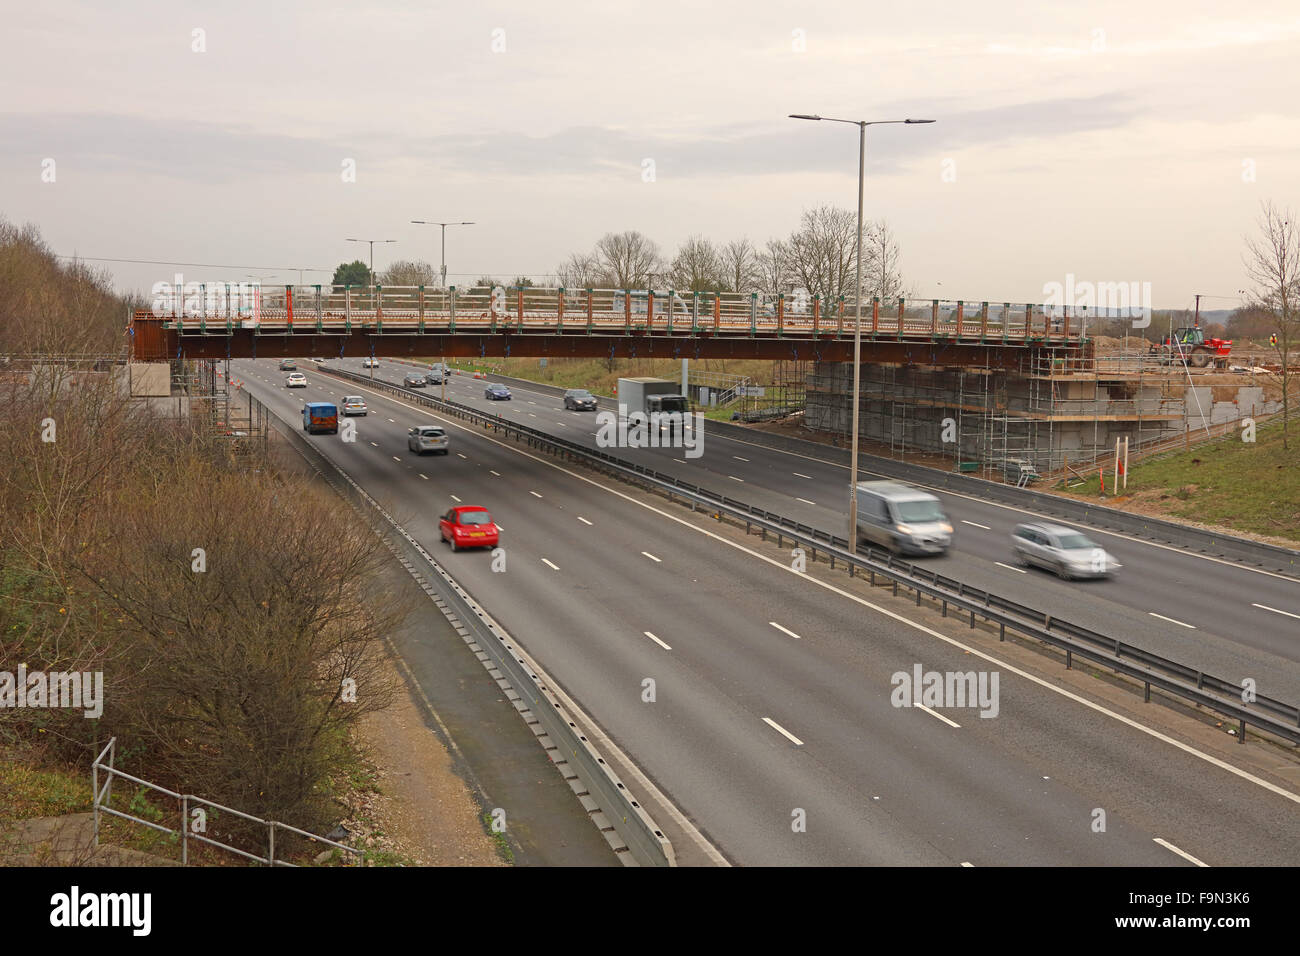 A new bridge over the M4 motorway under construction have had the steel support beams put in place a couple of nights - Stock Image